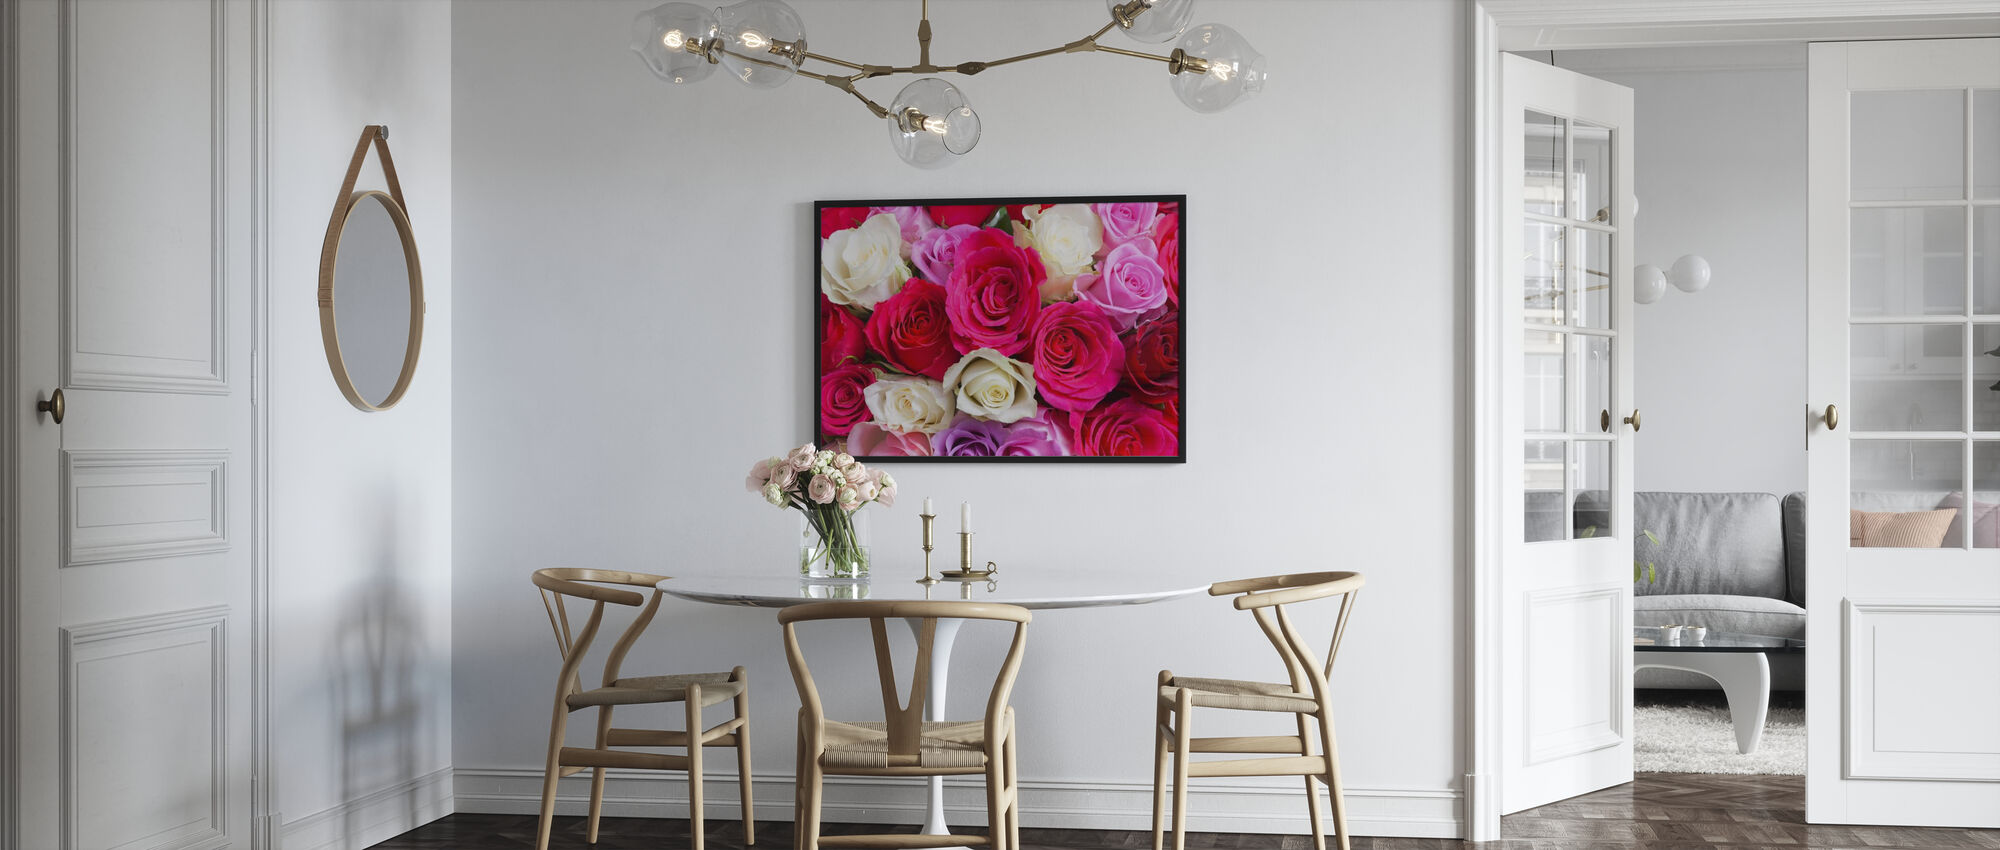 Beautiful Roses - Poster - Kitchen